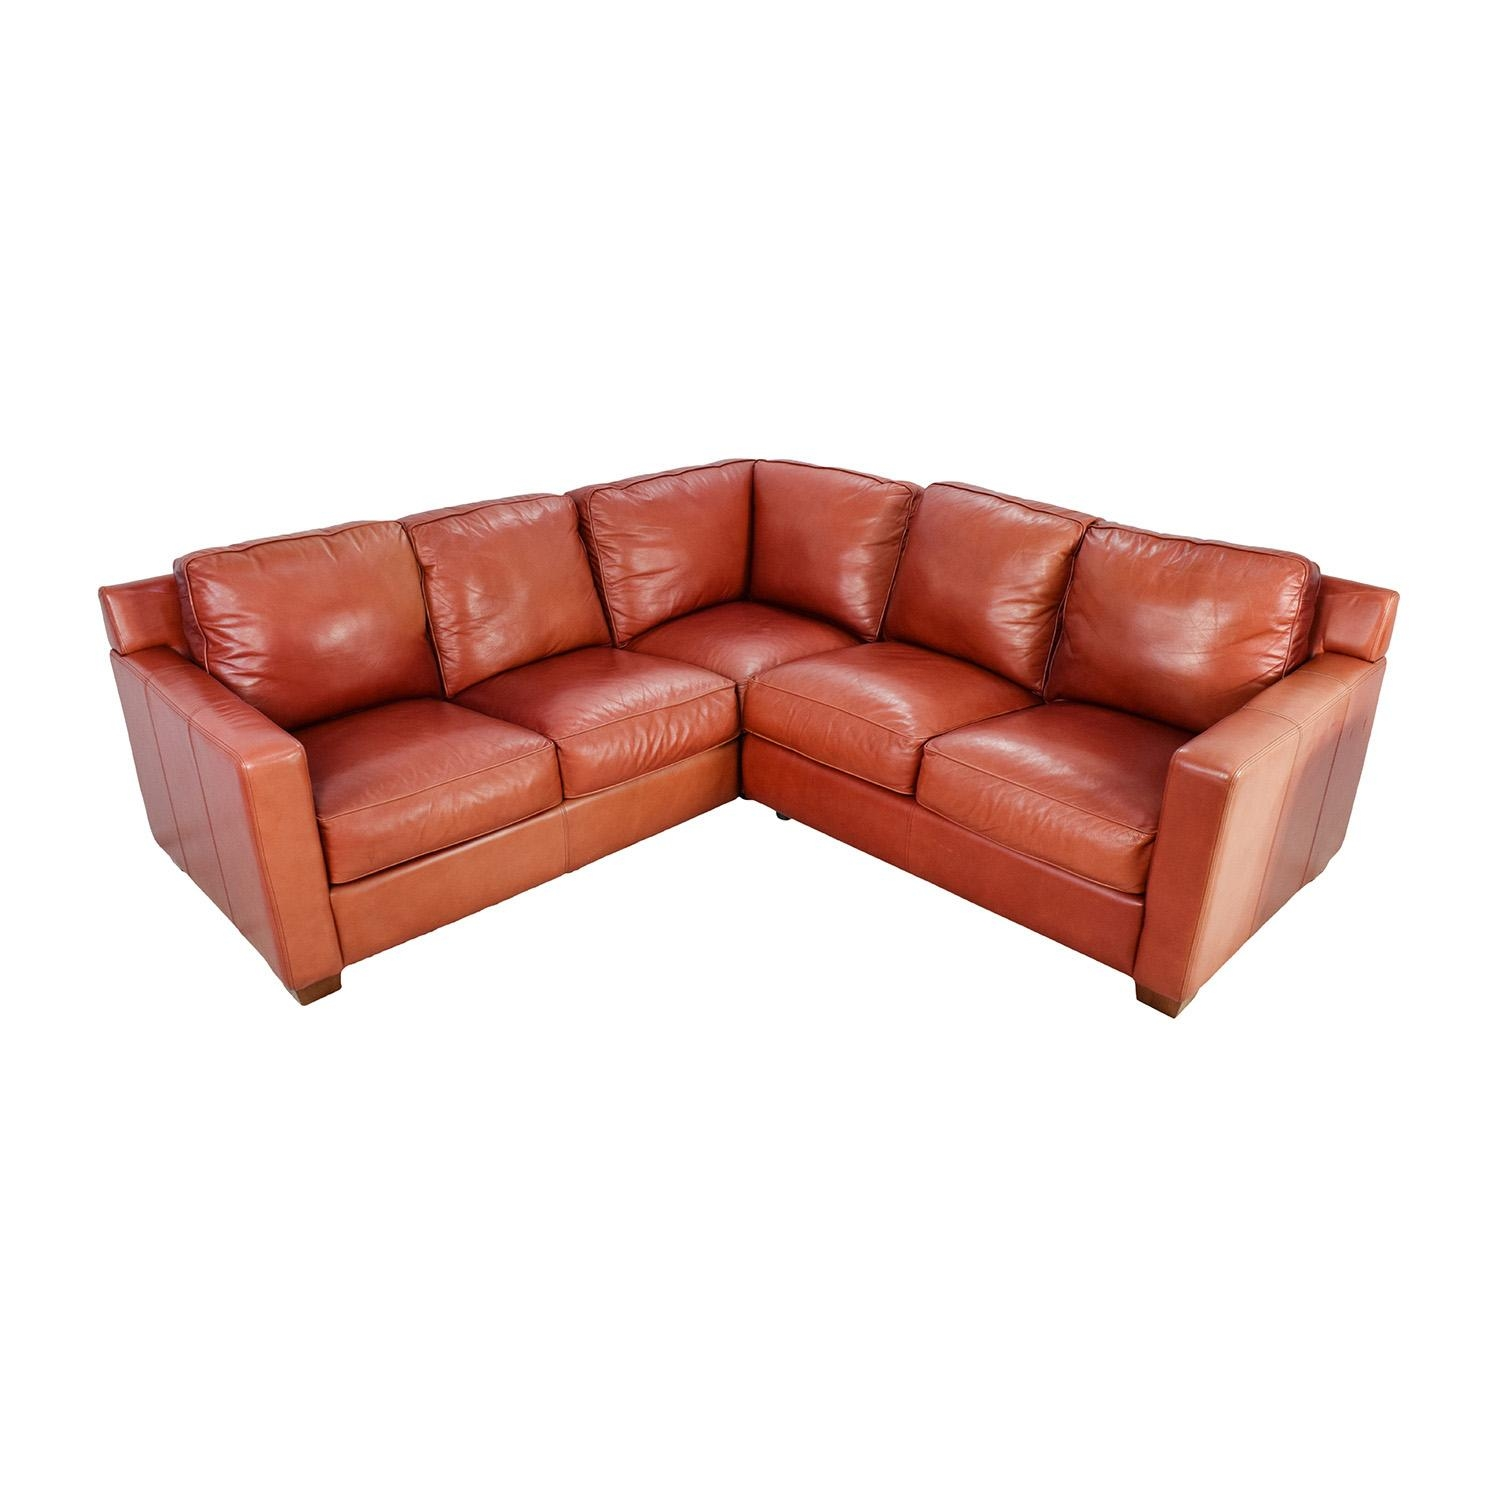 68% Off - Thomasville Thomasville Red Leather Sectional / Sofas intended for Thomasville Leather Sectionals